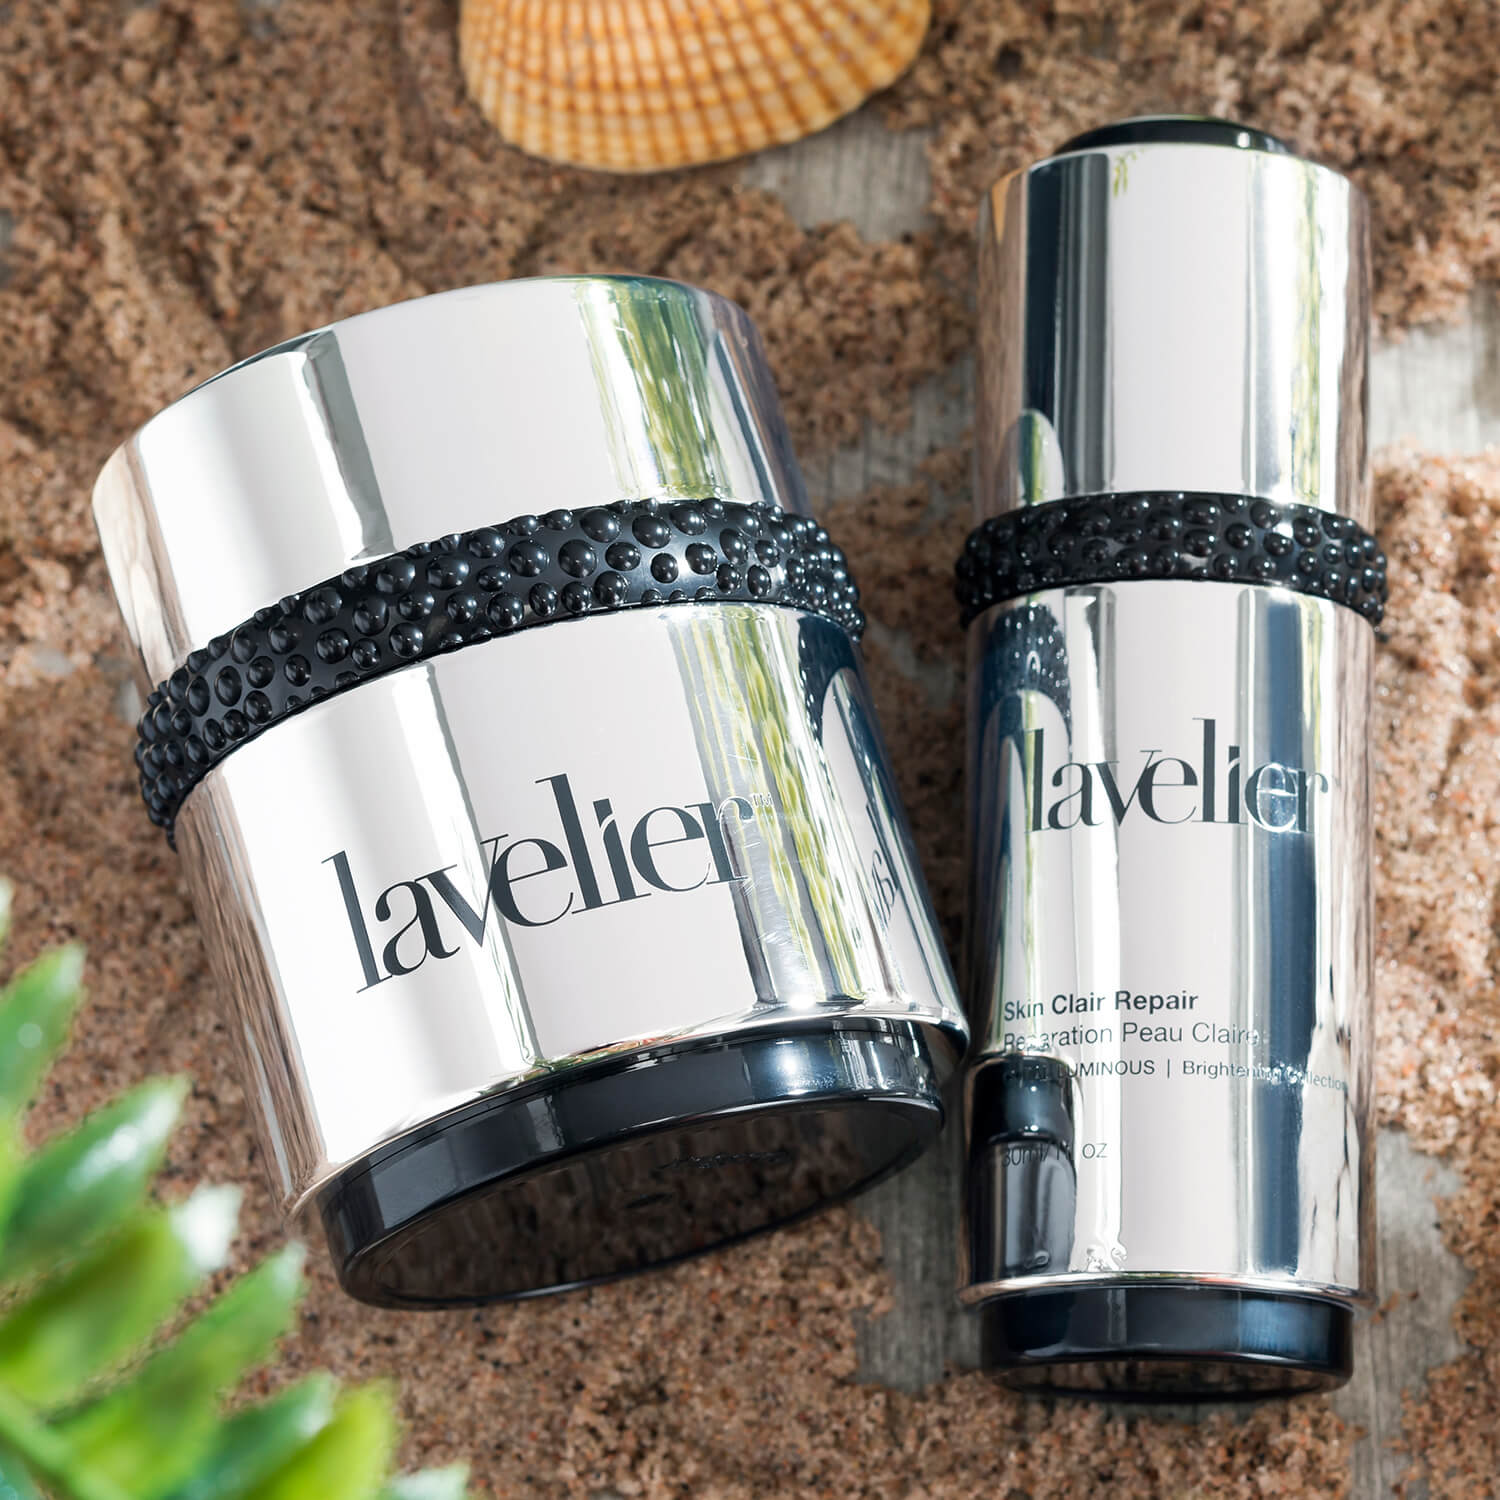 Lavelier SPF products